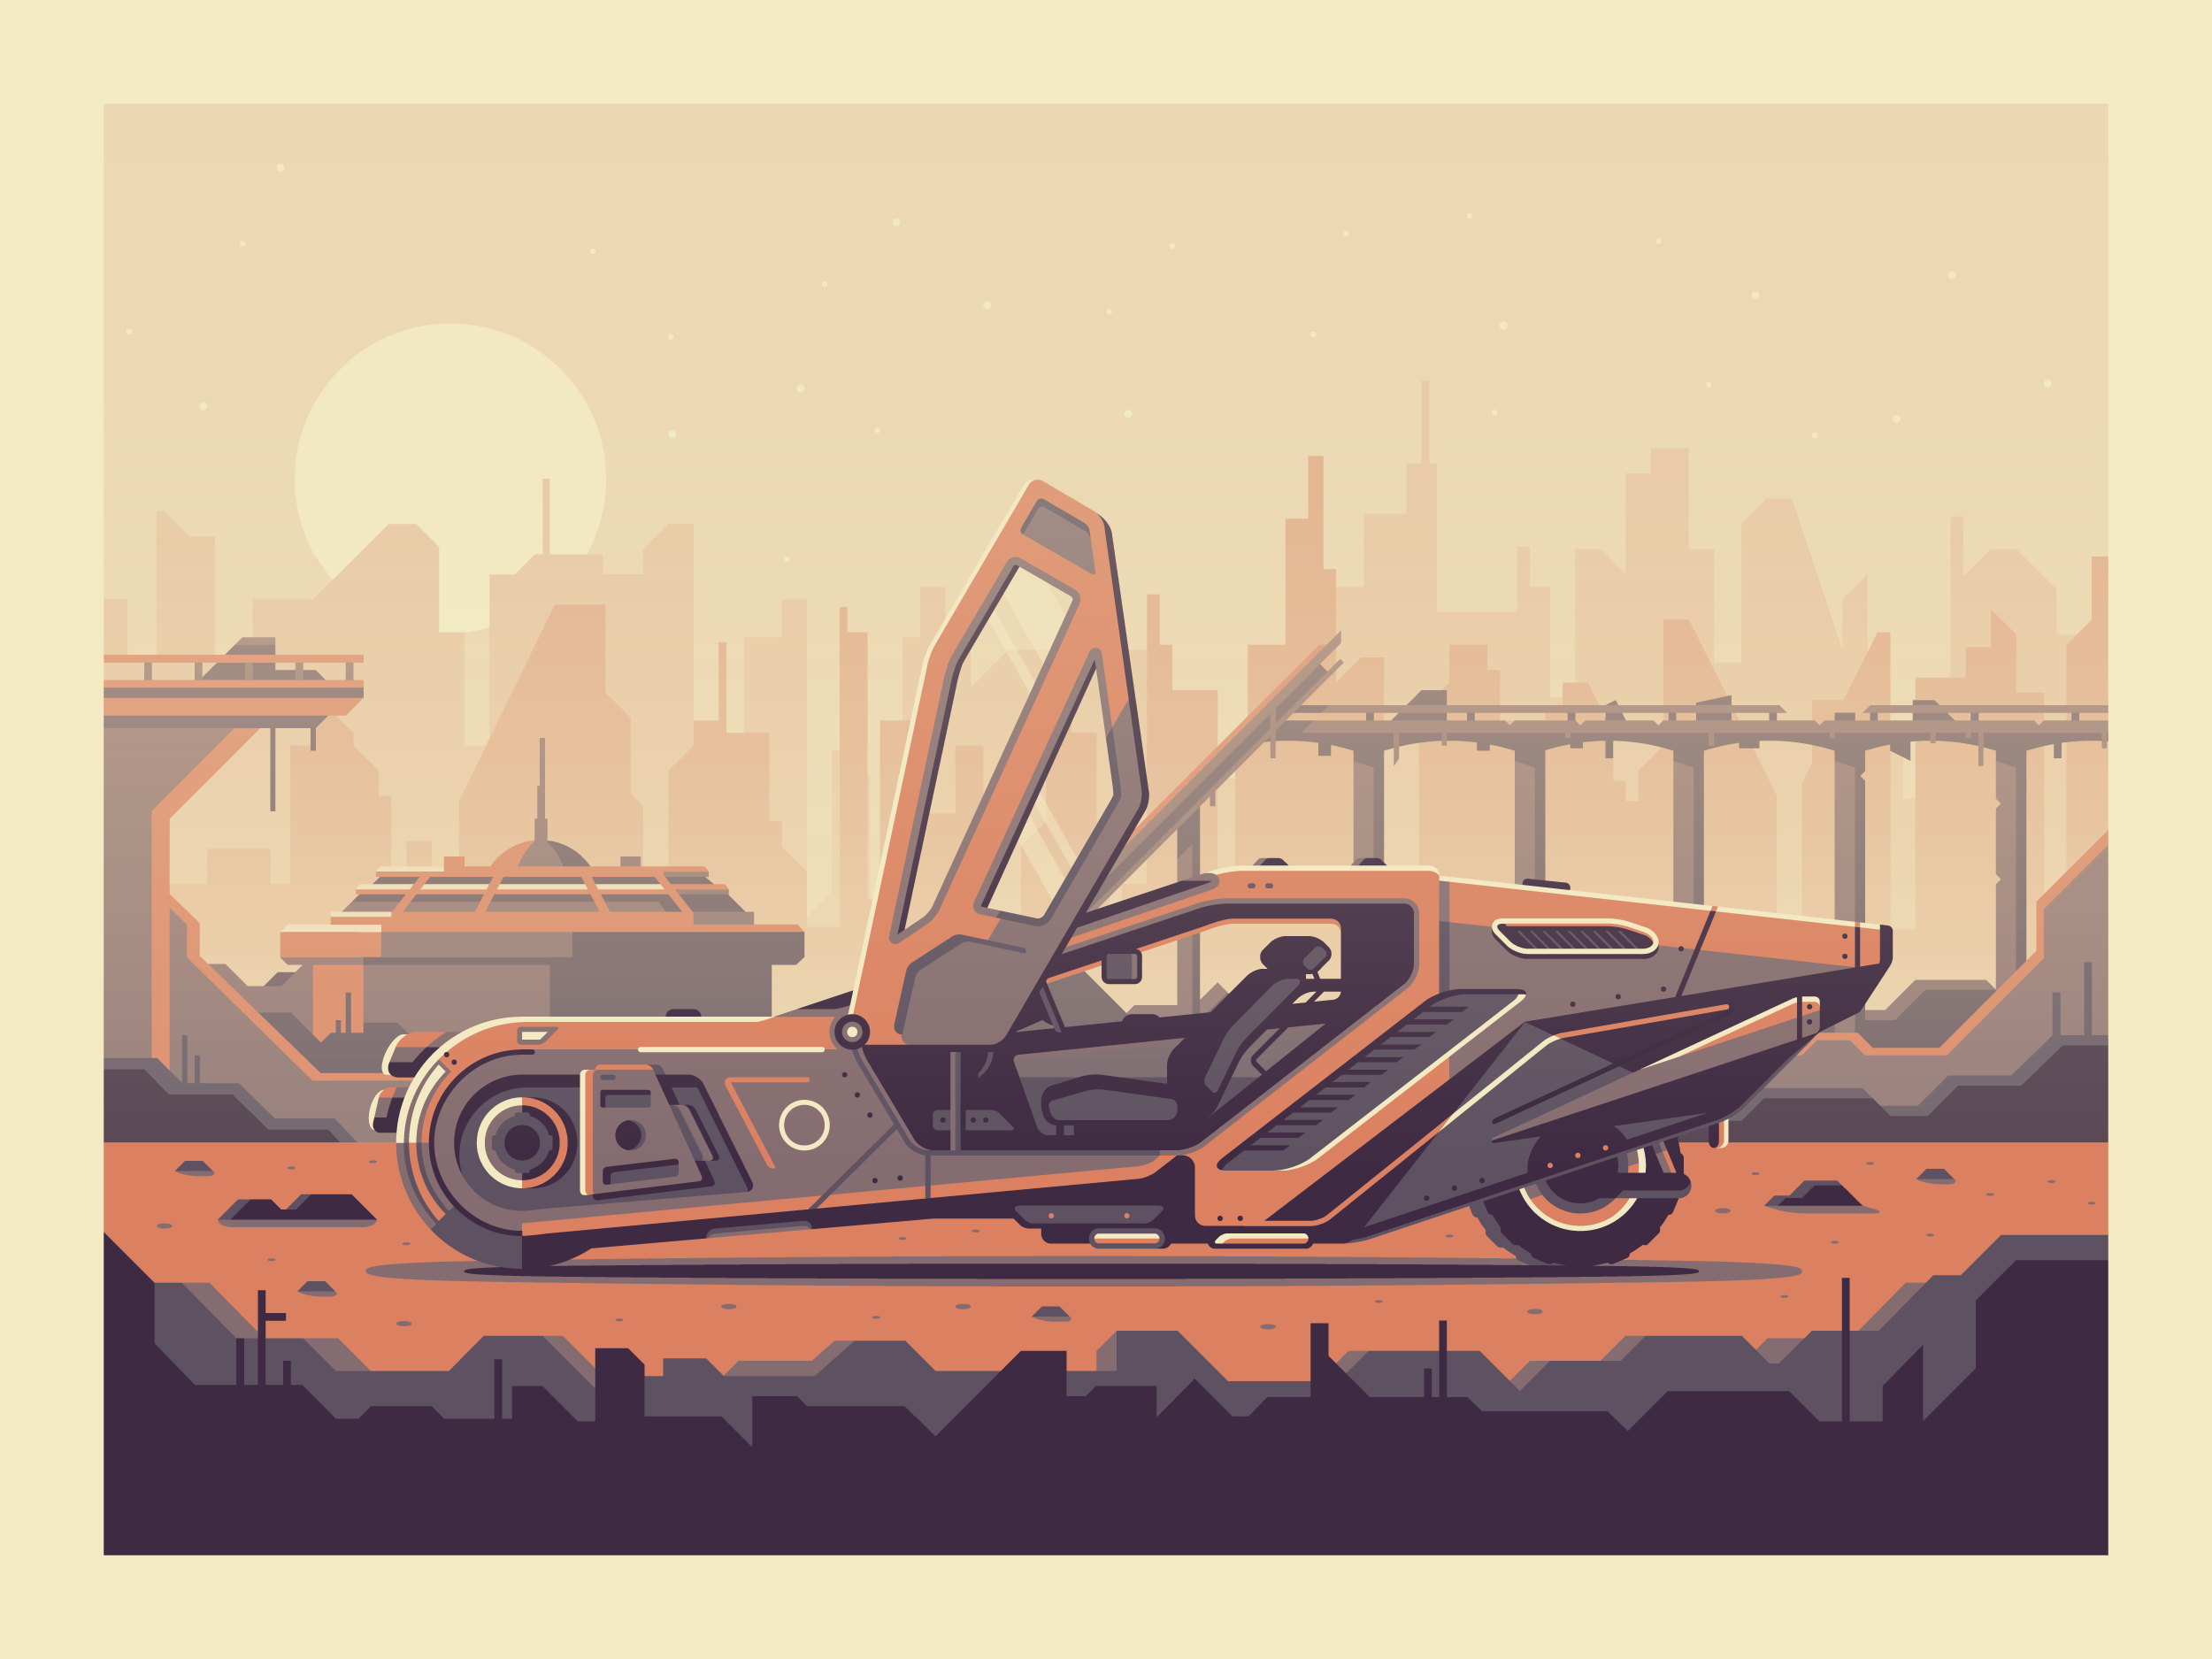 Blade Runner 2049 by Matt Anderson. Illustration of K's car from Blade Runner.